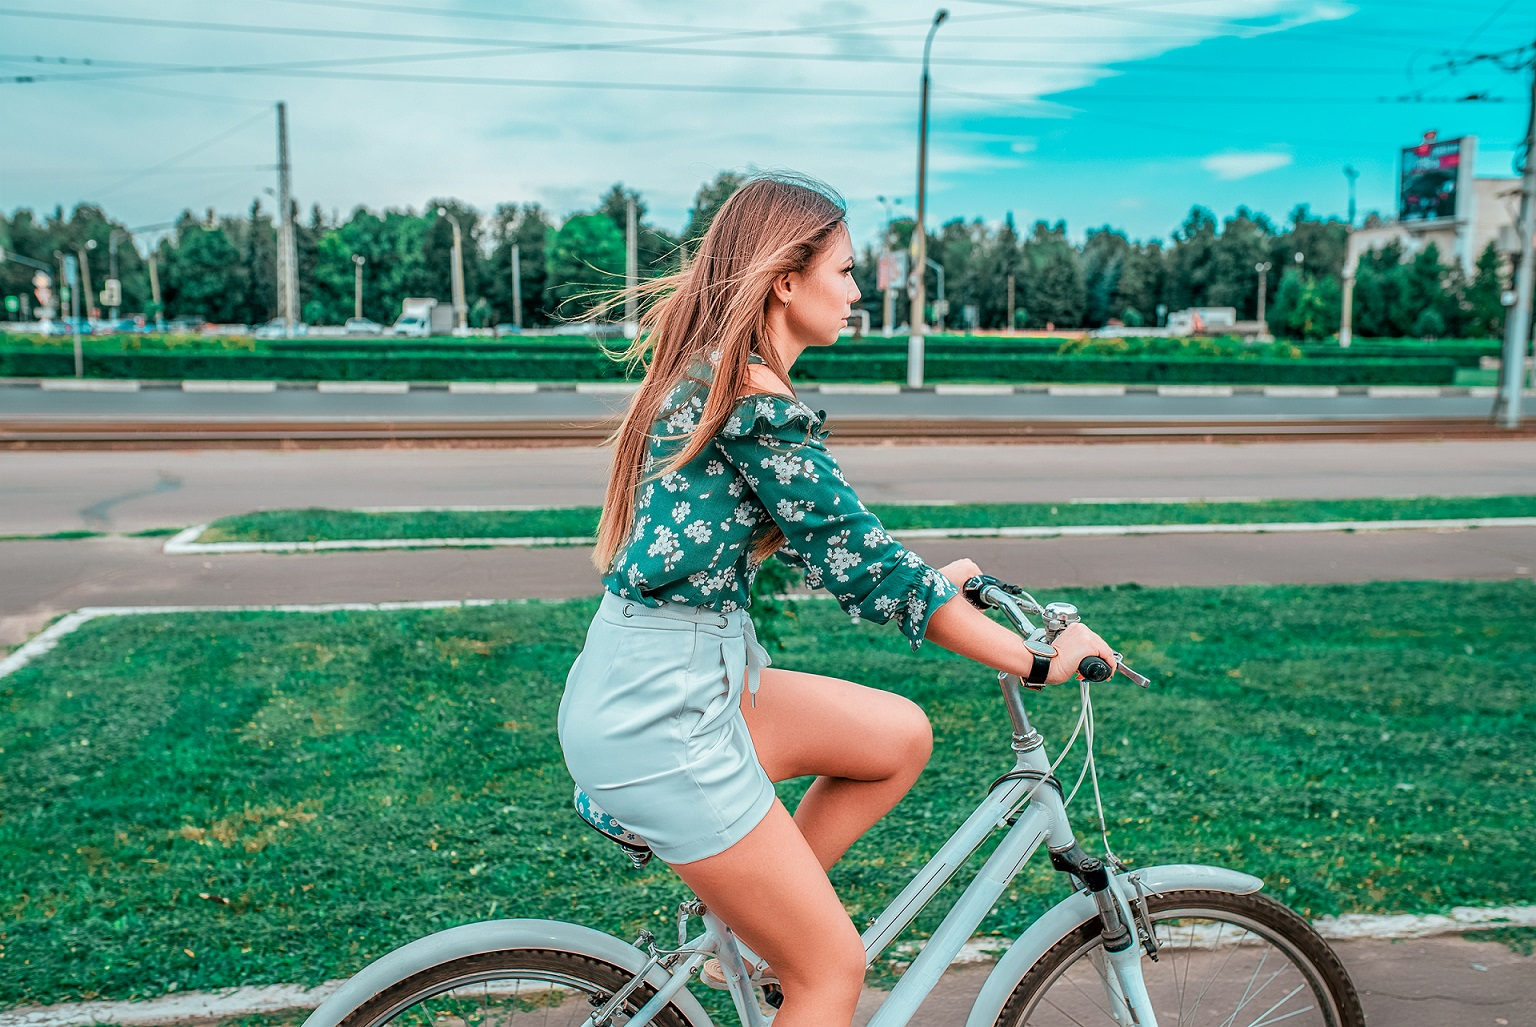 A girl rides a bicycle in the summer in the city on the background of green grass. Returns from a bike run in the weekend in the fresh air, fitness in the city.